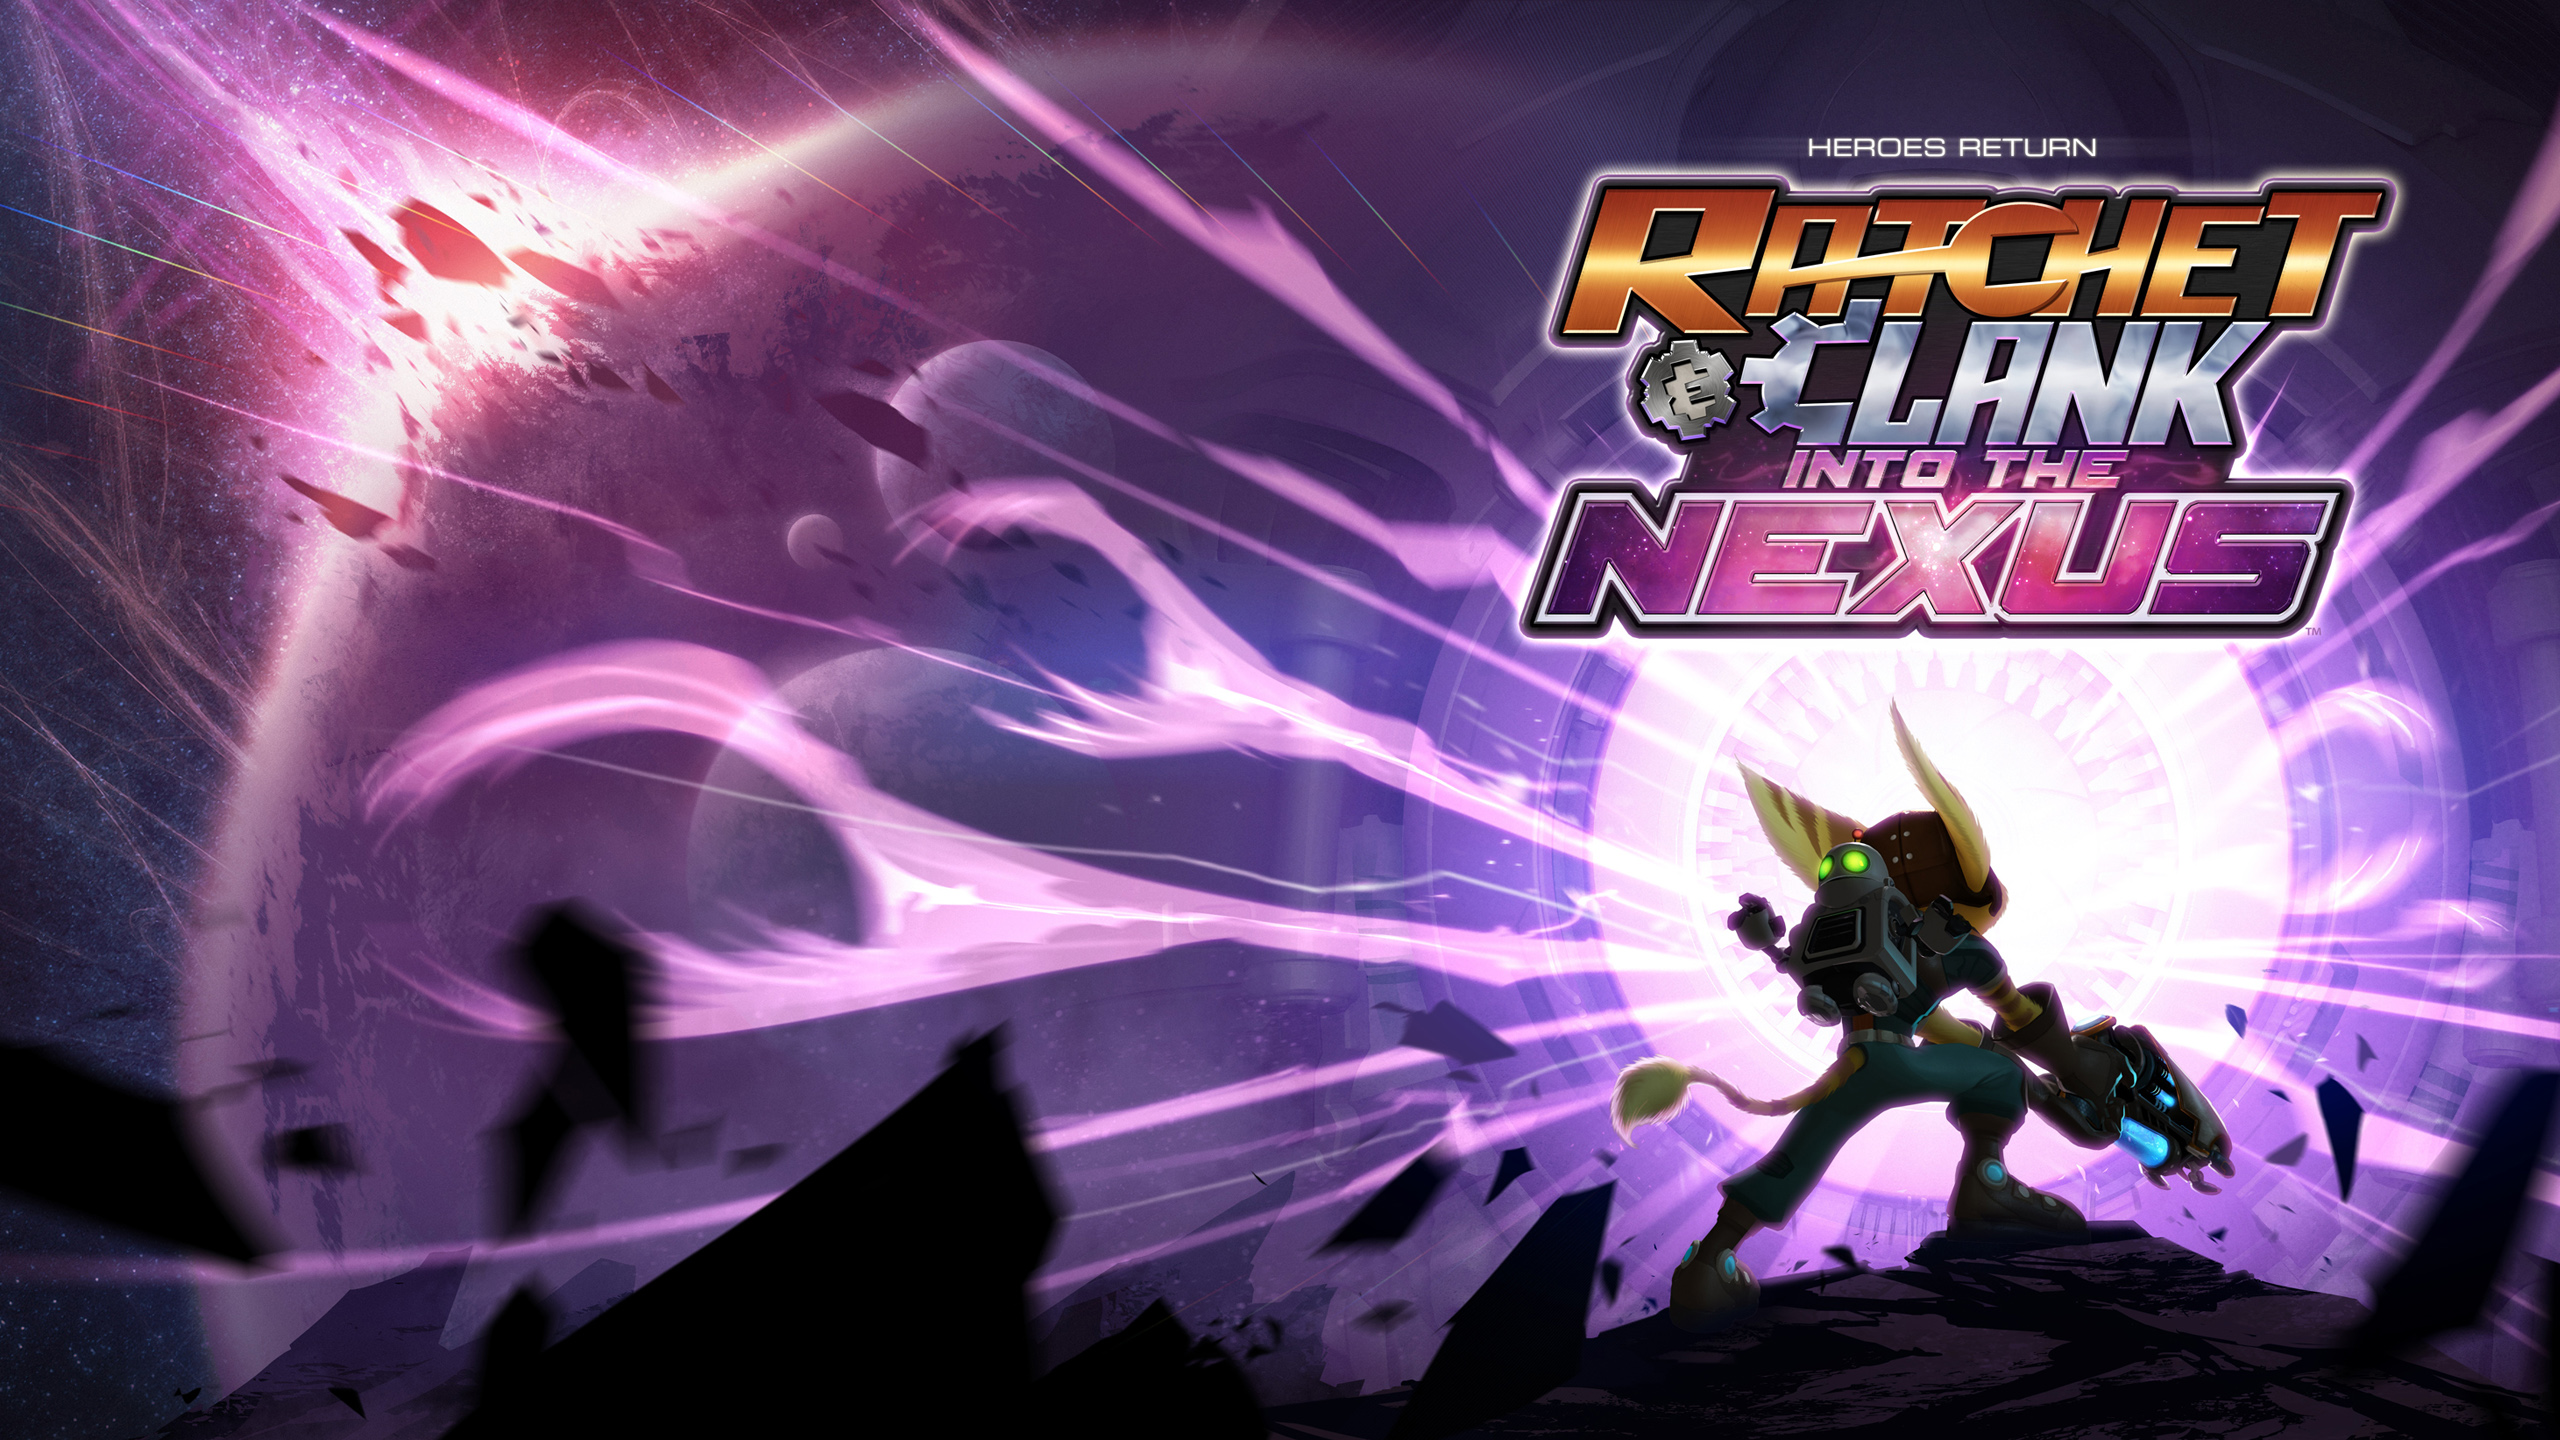 Ratchet And Clank Into The Nexus Game Hd Wallpaper